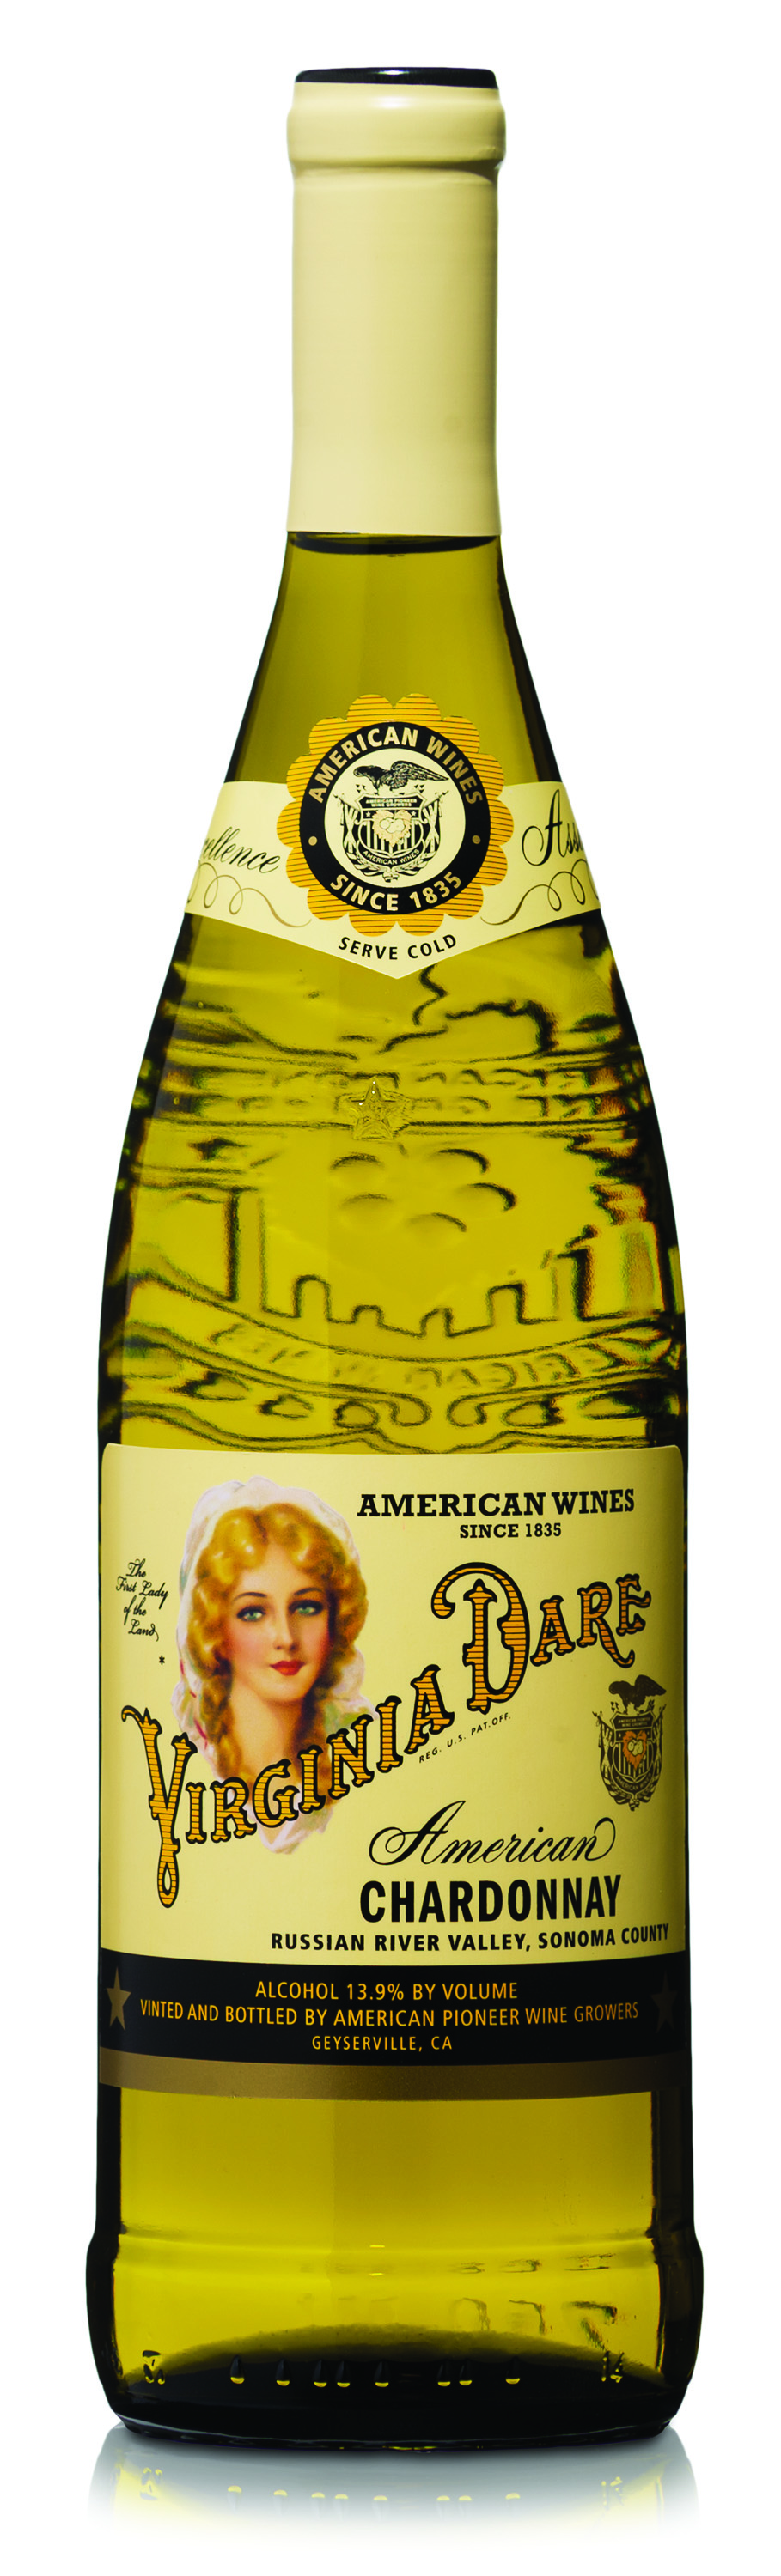 2014 Virginia Dare Chardonnay Russian River Valley